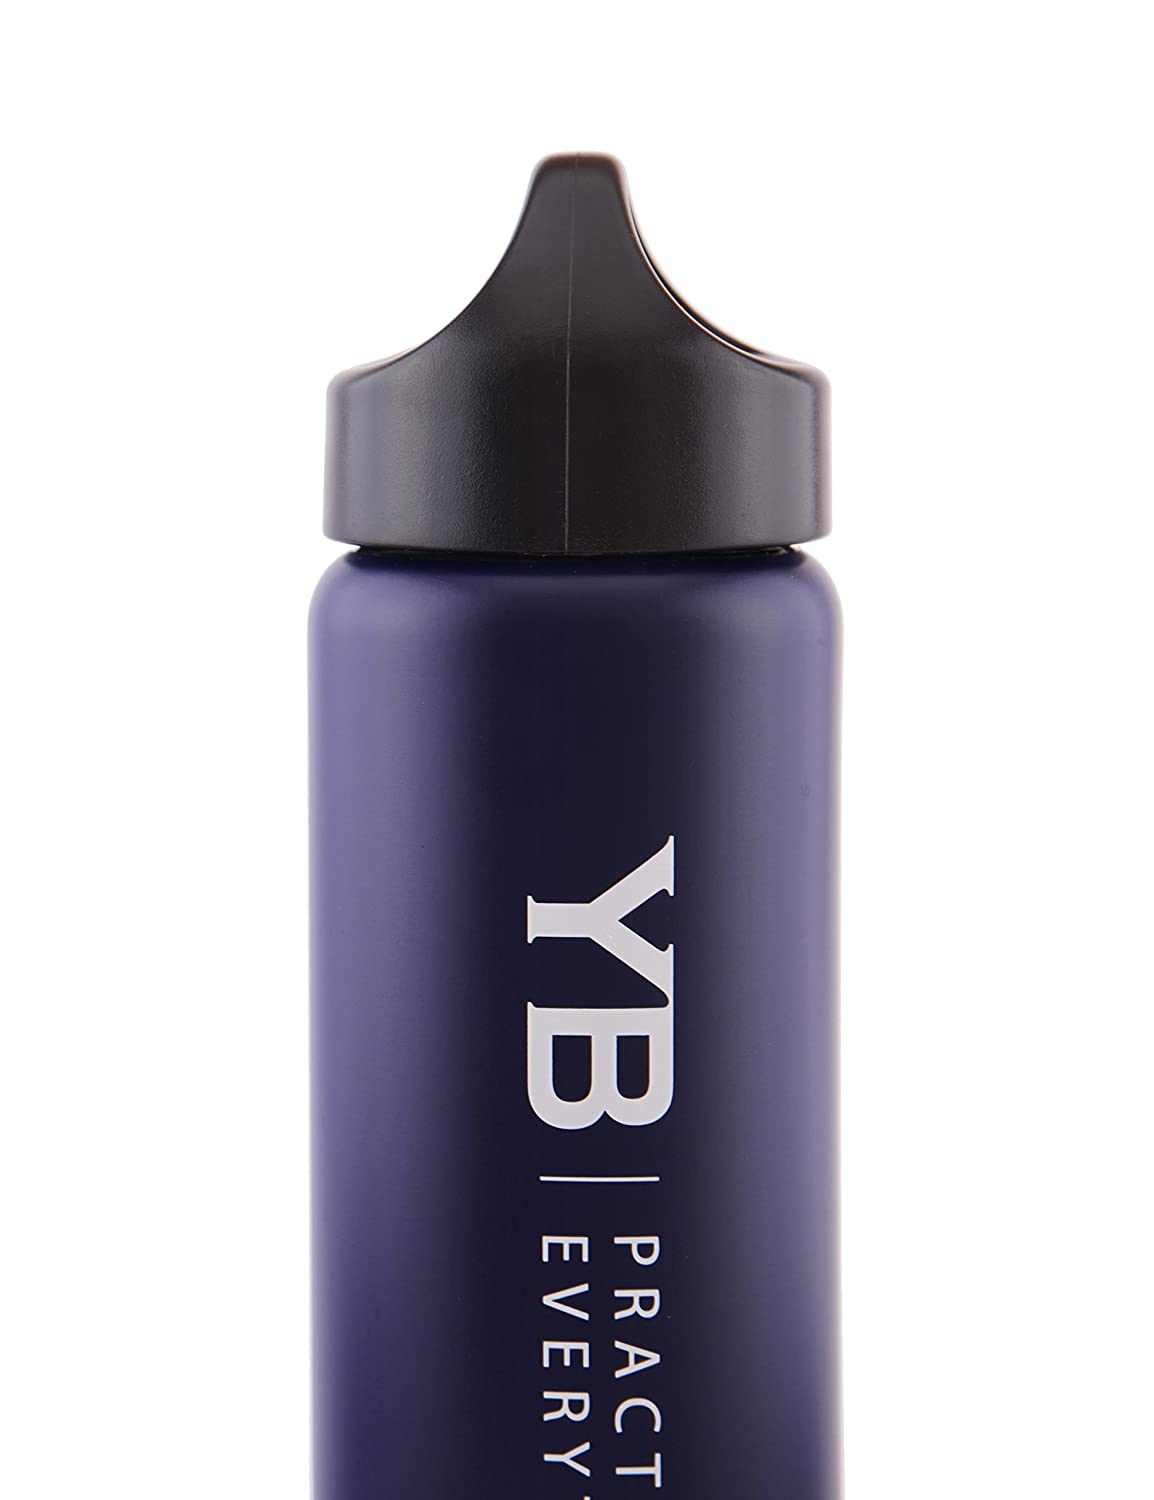 Super-Insulated Stainless Steel BPA-Free Cap Leak-Proof Easy-Fill /& Easy Wash Mouth YOGABODY Hot /& Cold Sports Water Bottle